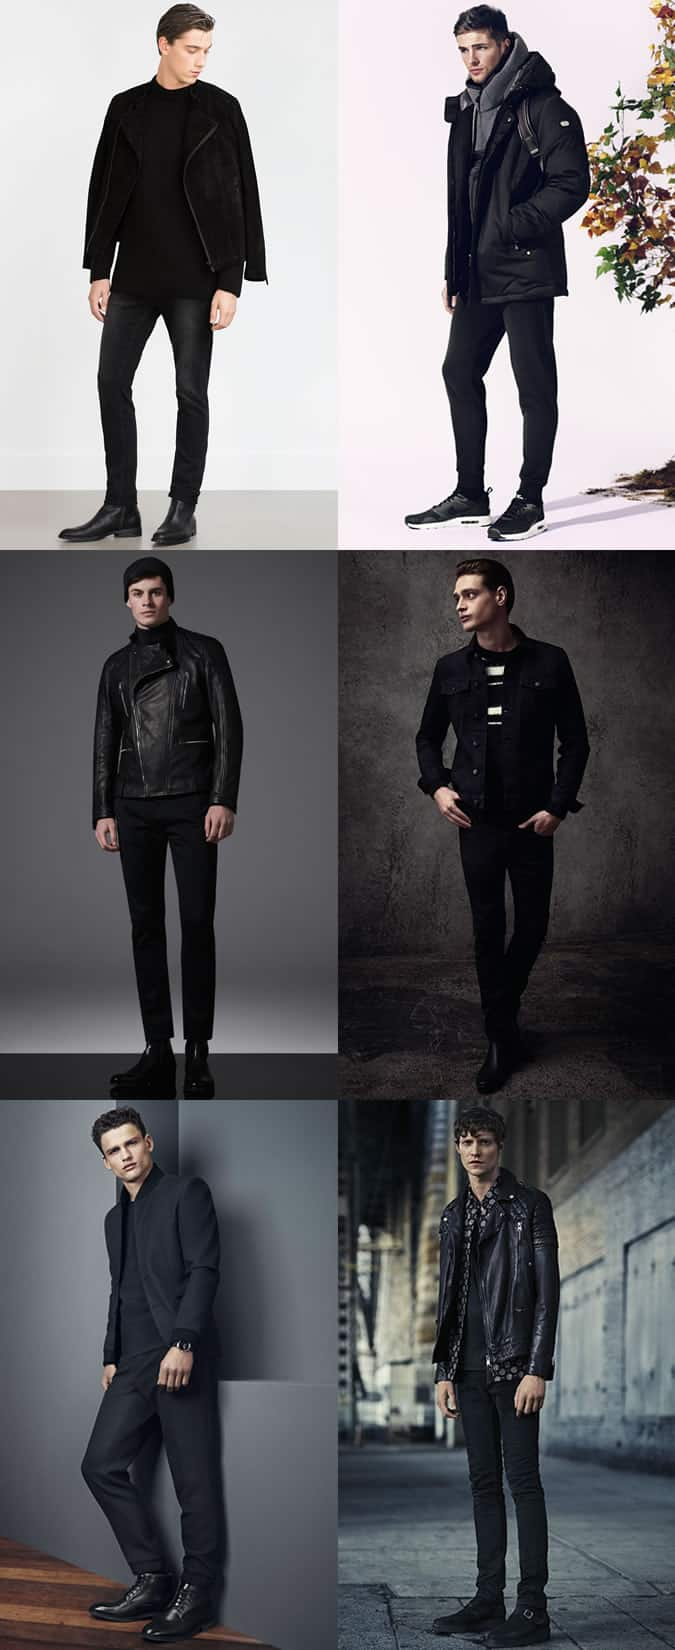 Men's All-Black Outfit Inspiration Lookbook